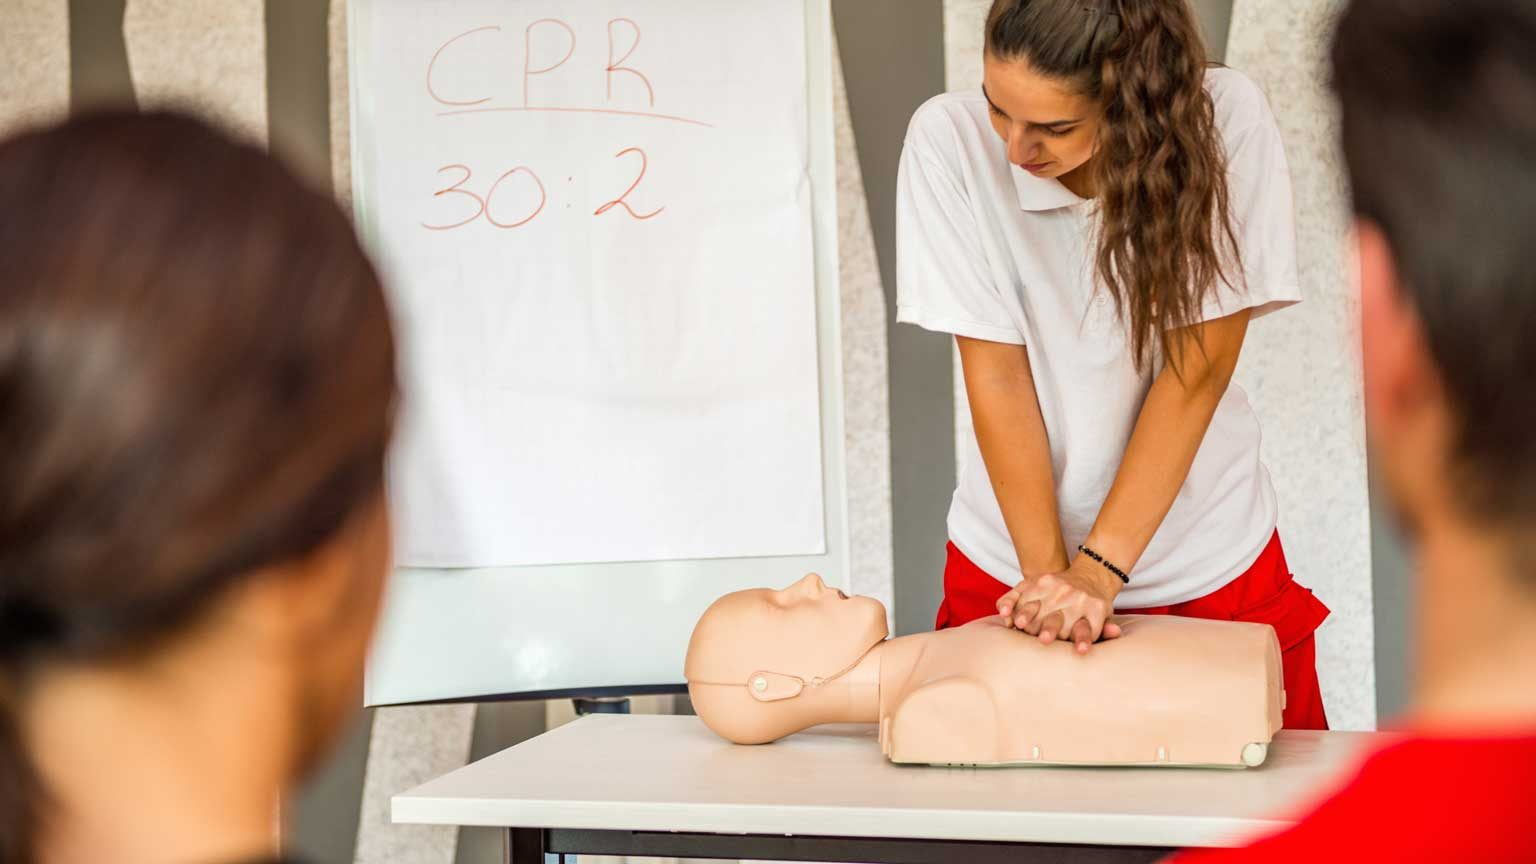 Instructor Demonstrates Cpr